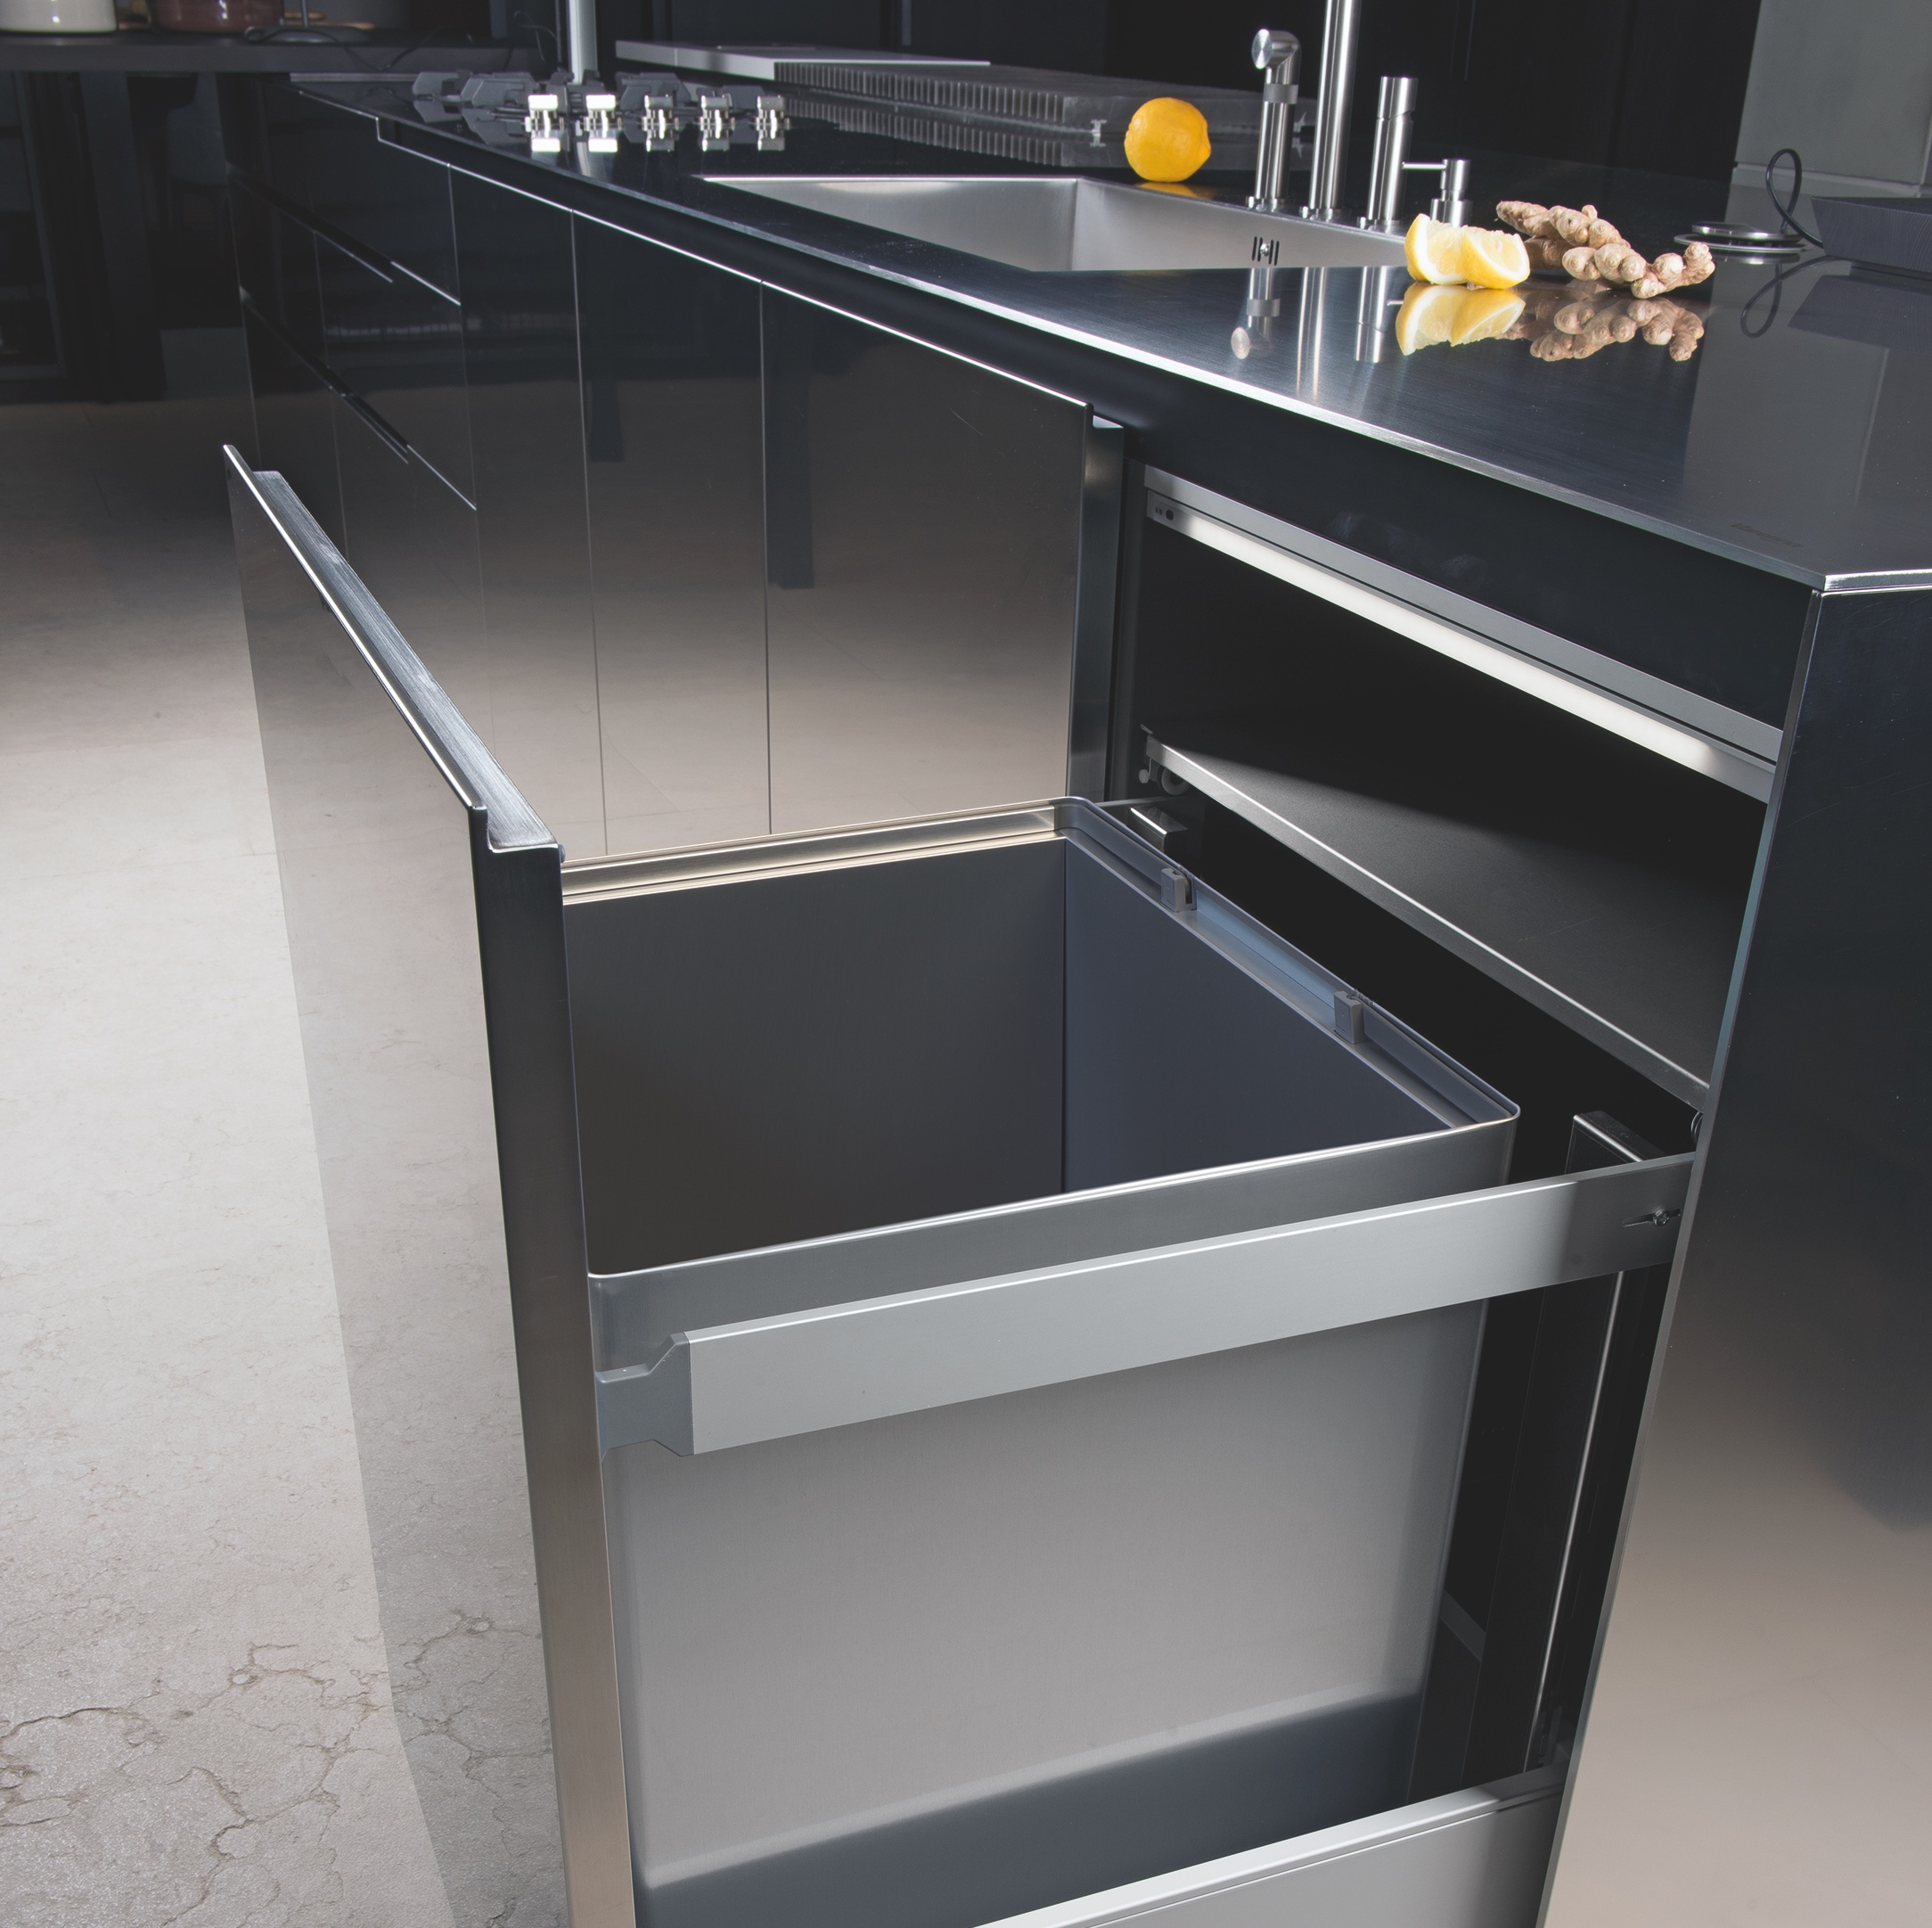 Introducing Tecnoinox pull-out In-cupboard Bins: Superb Italian Styling & Craftsmanship